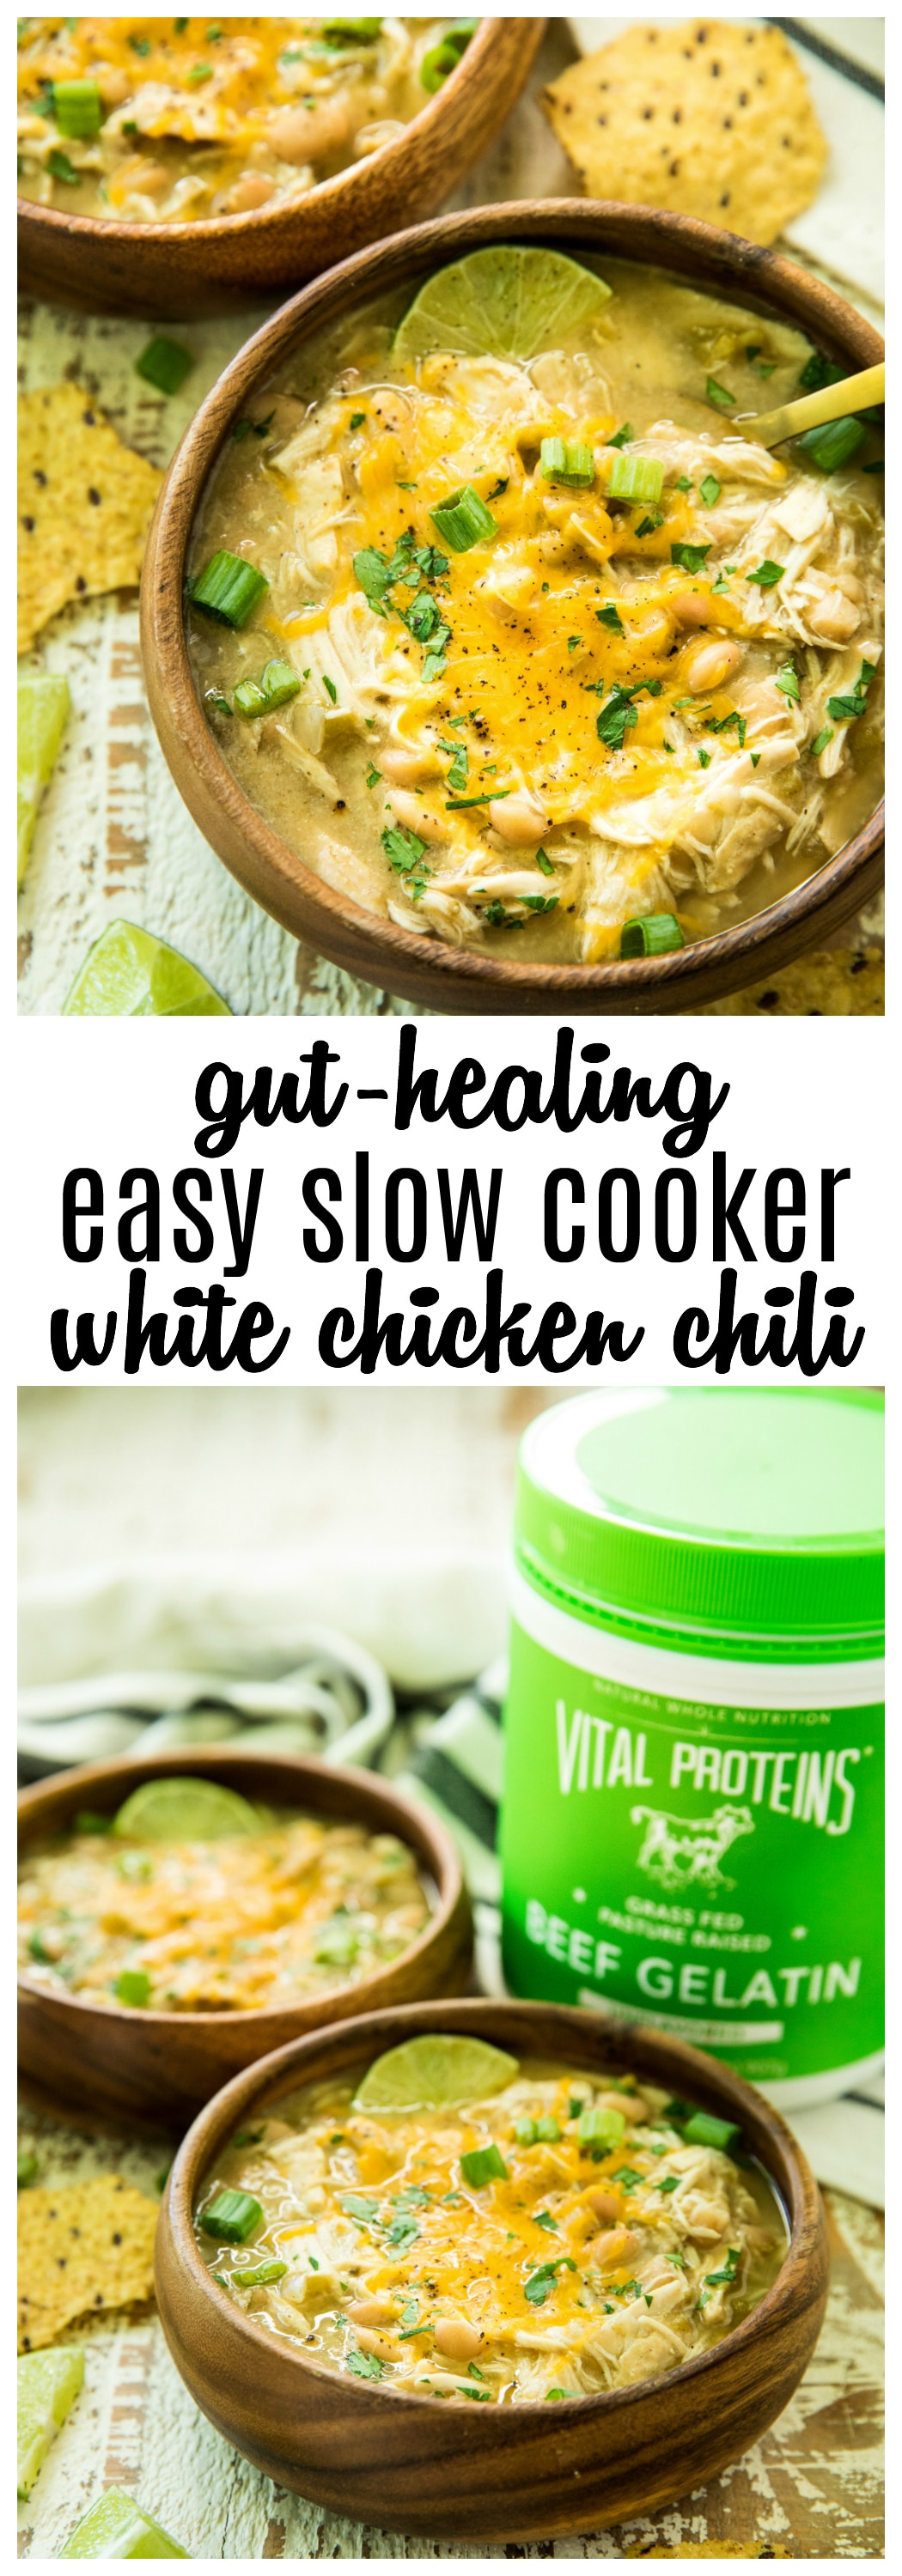 Pinterest image for Gut-Healing Easy Slow Cooker White Chicken Chili